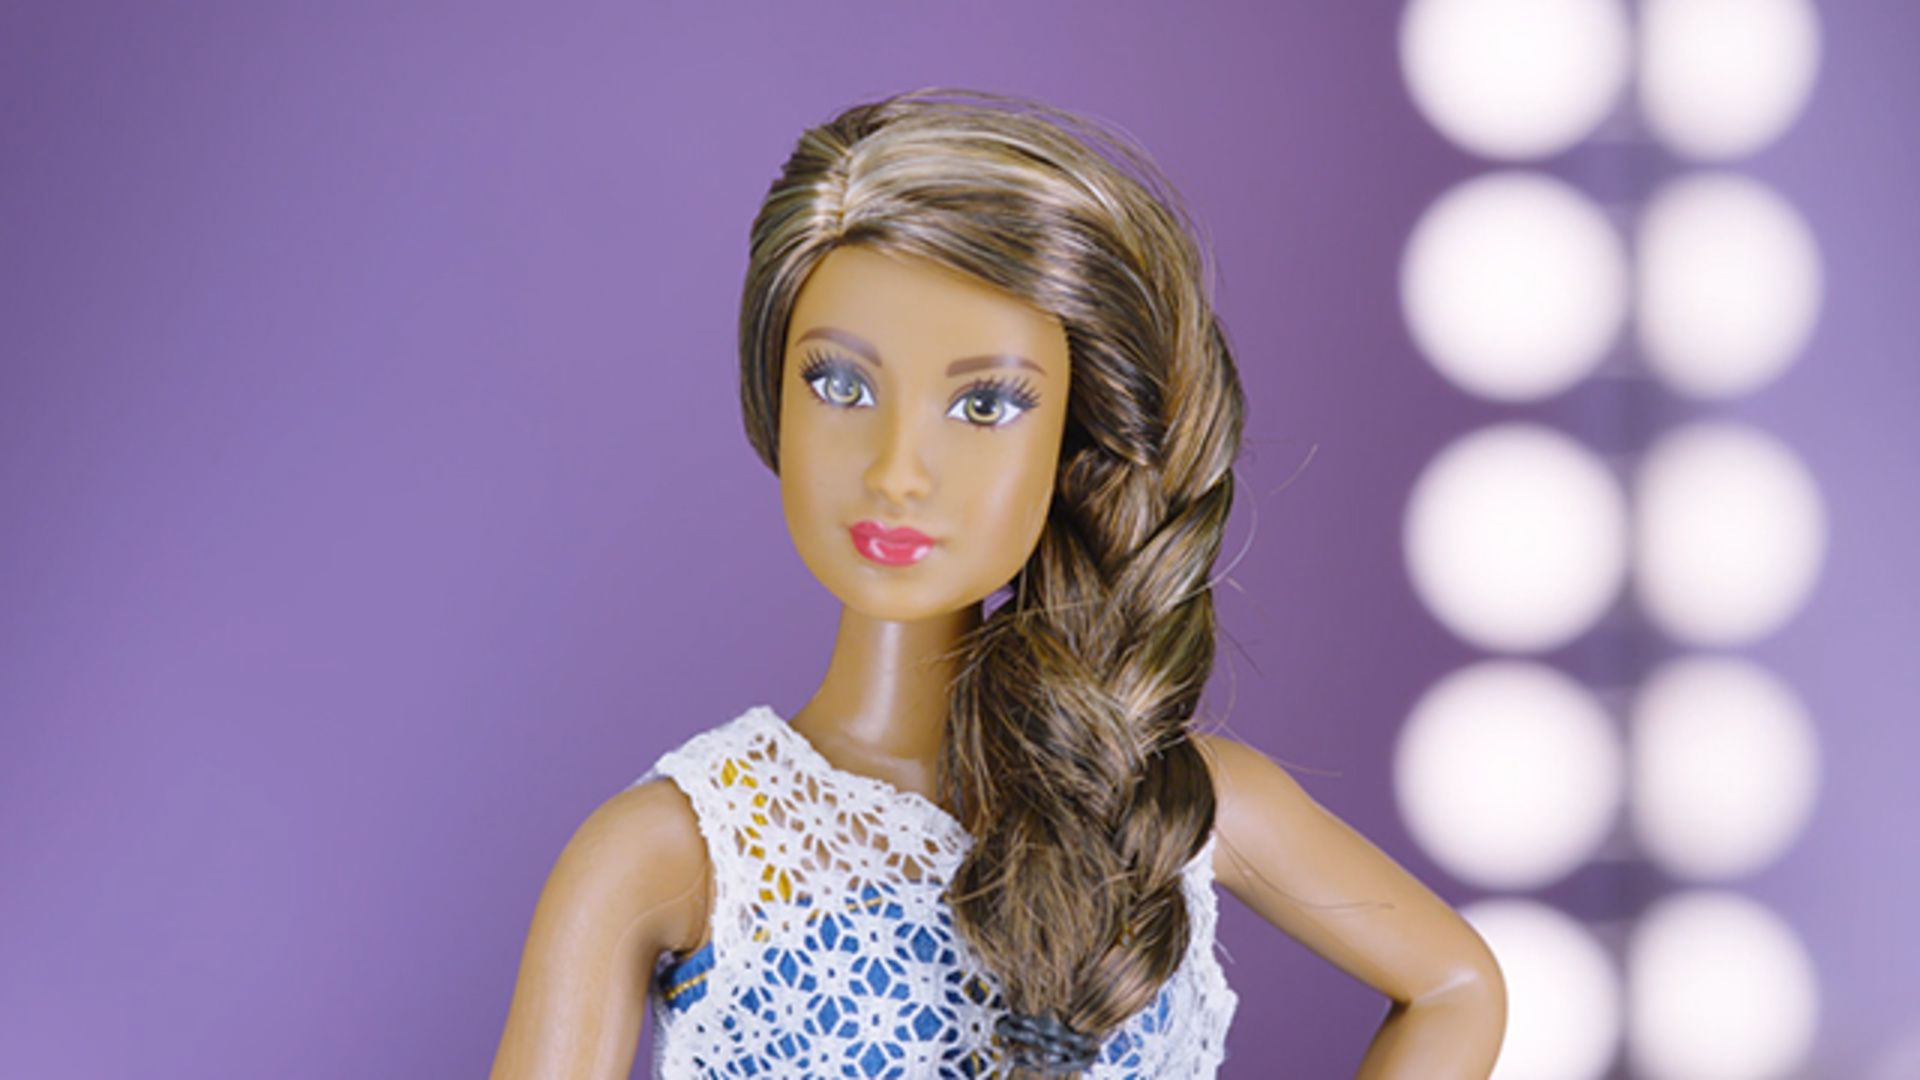 Barbie Hairstyle Compilation: Attention Barbie fans: these Barbie ...